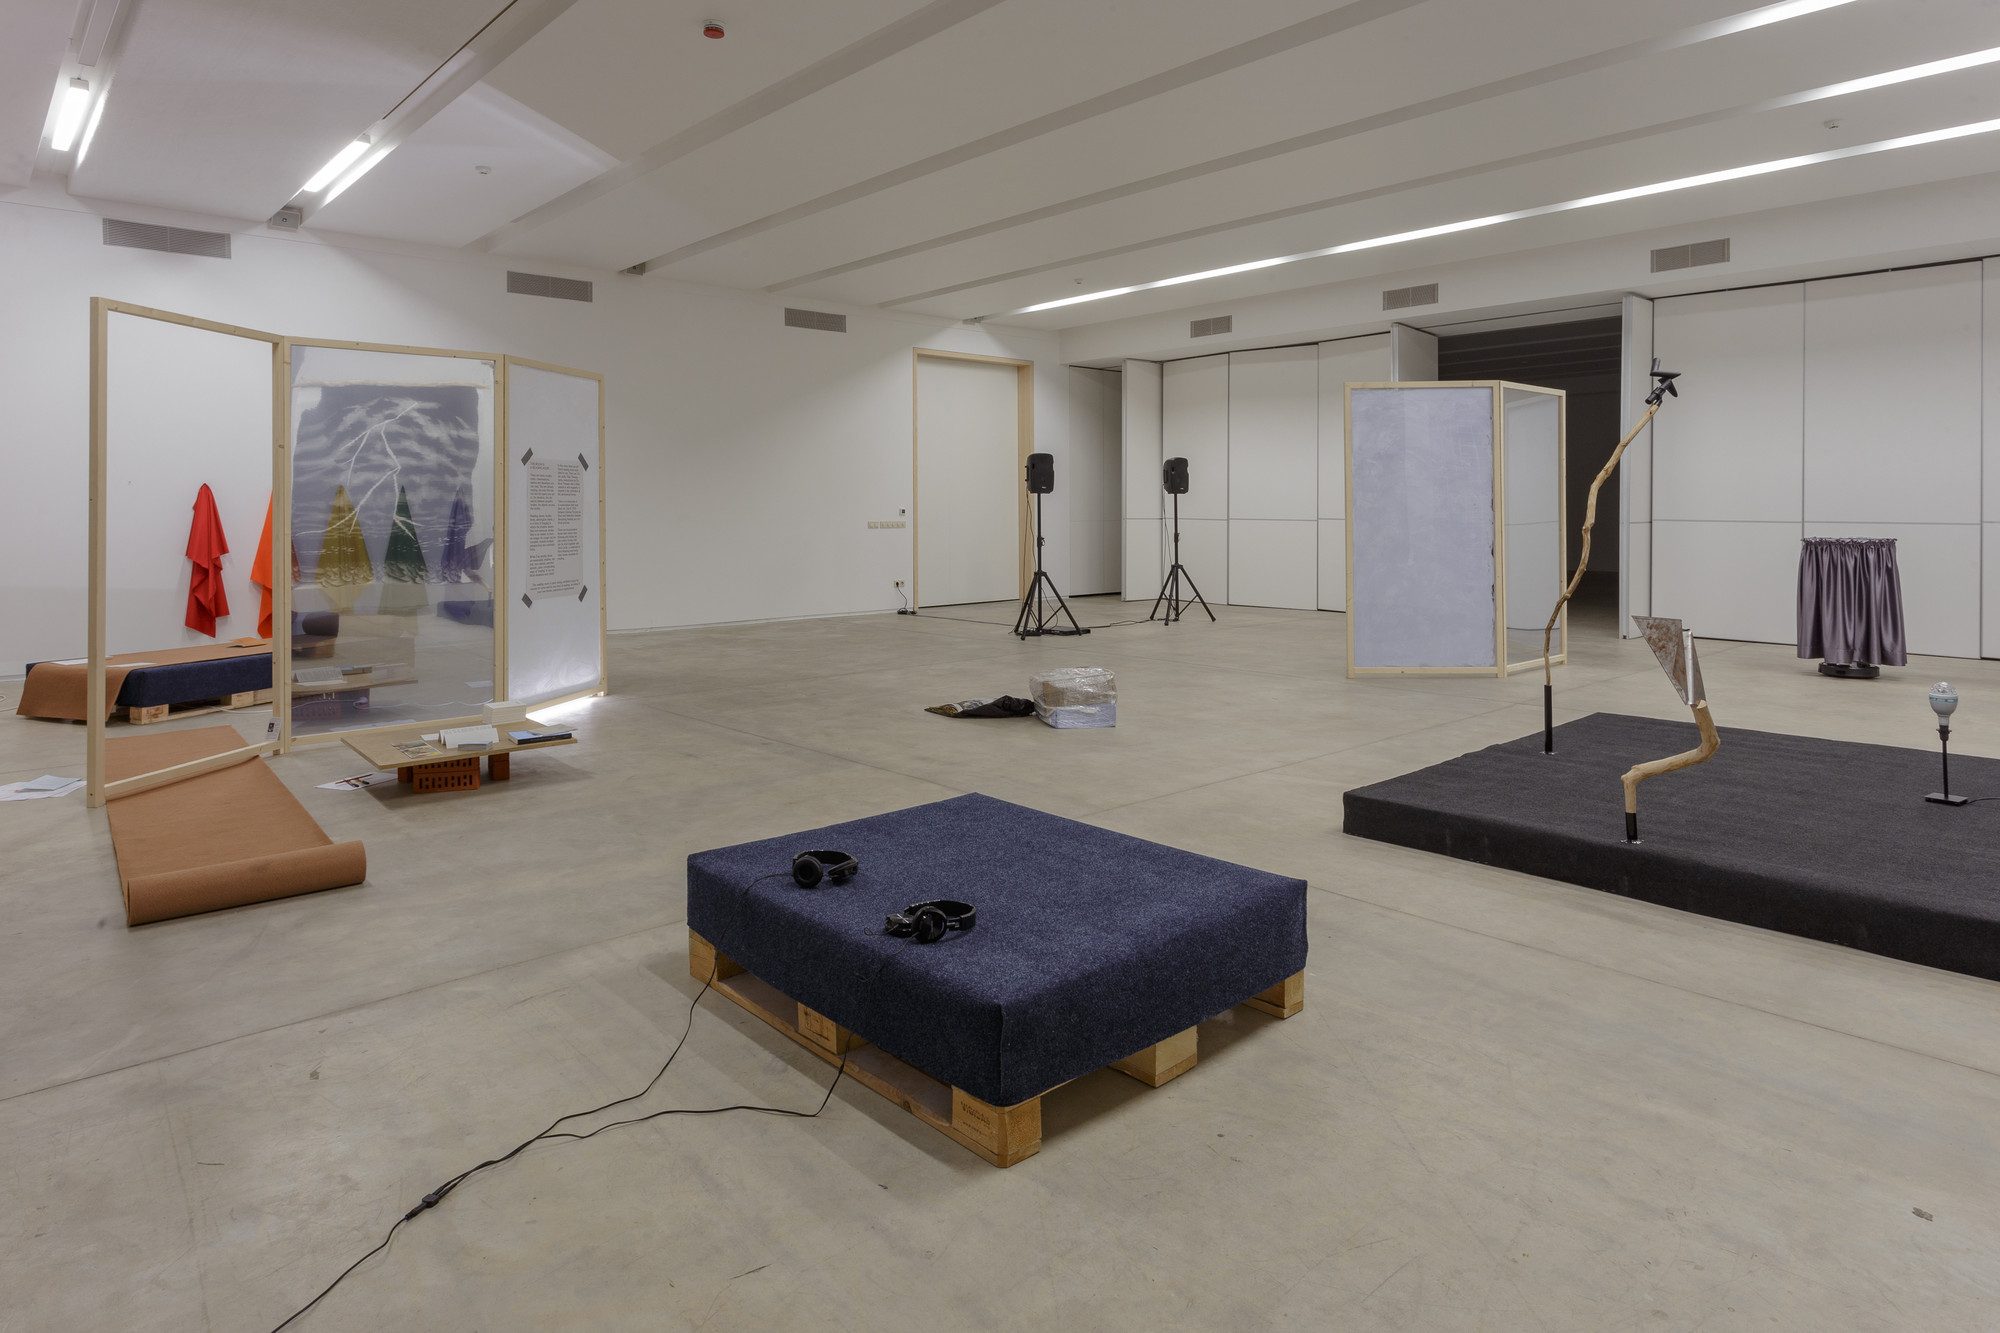 Double Bind, exhibition view, 2015